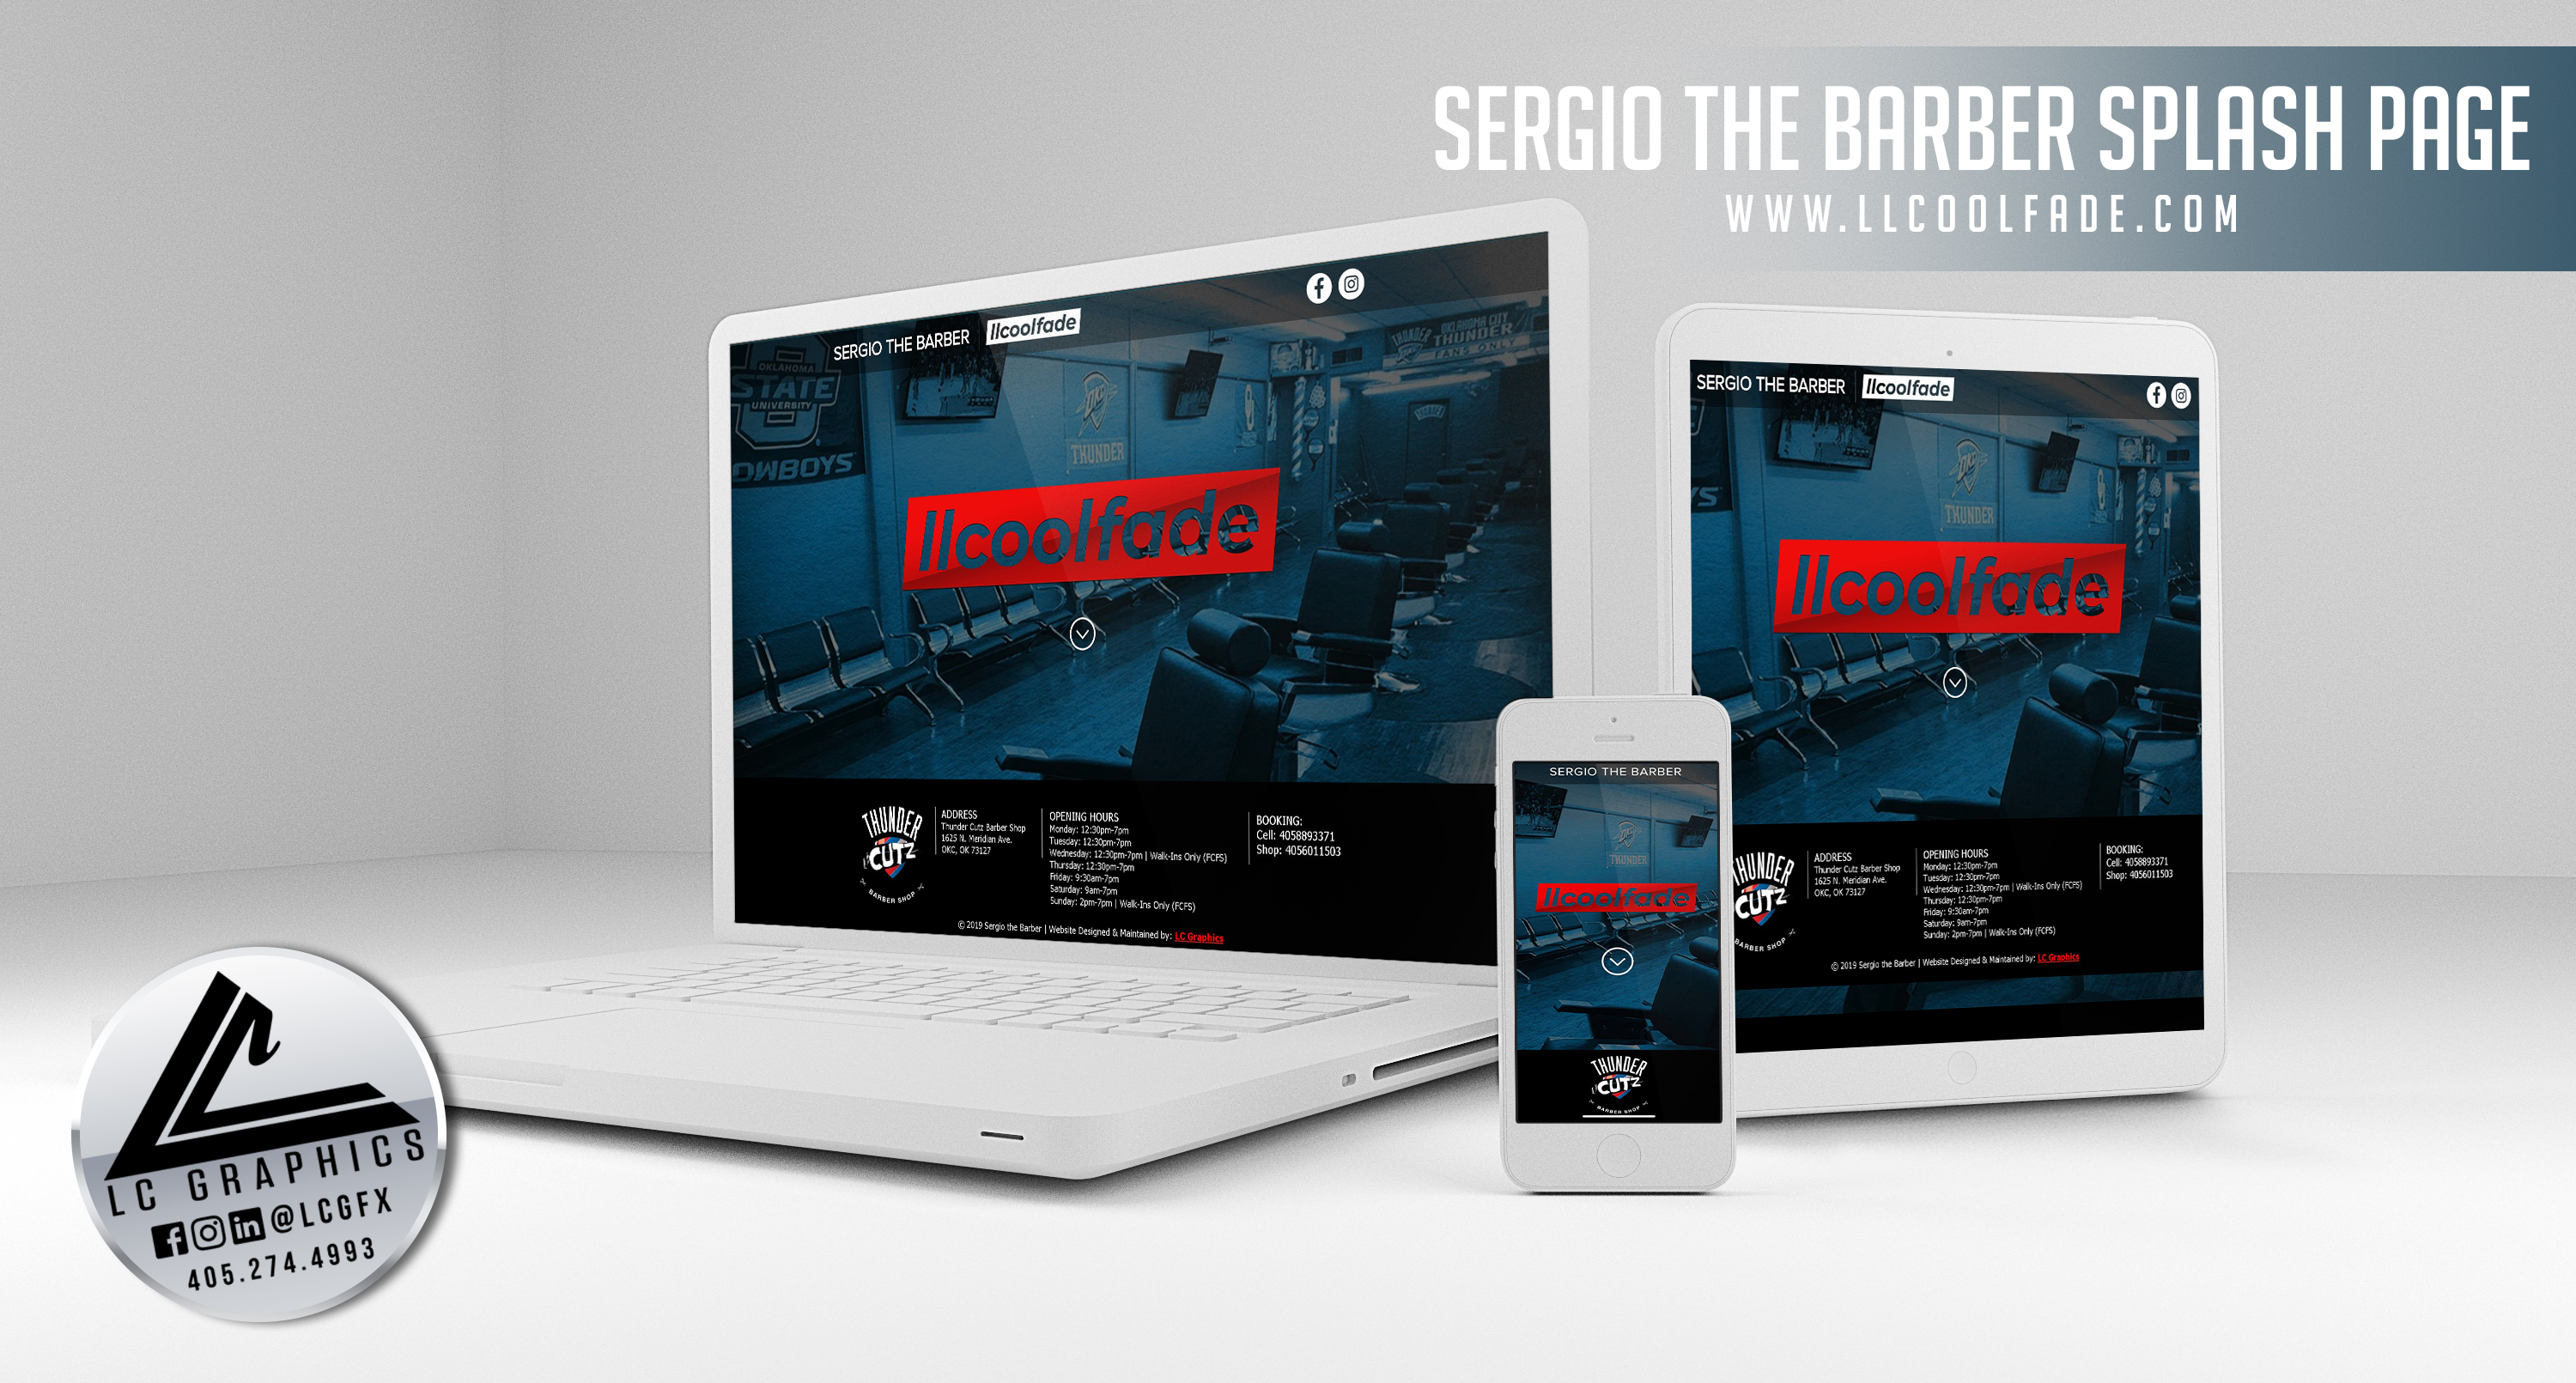 Sergio the Barber Website Mockup 2